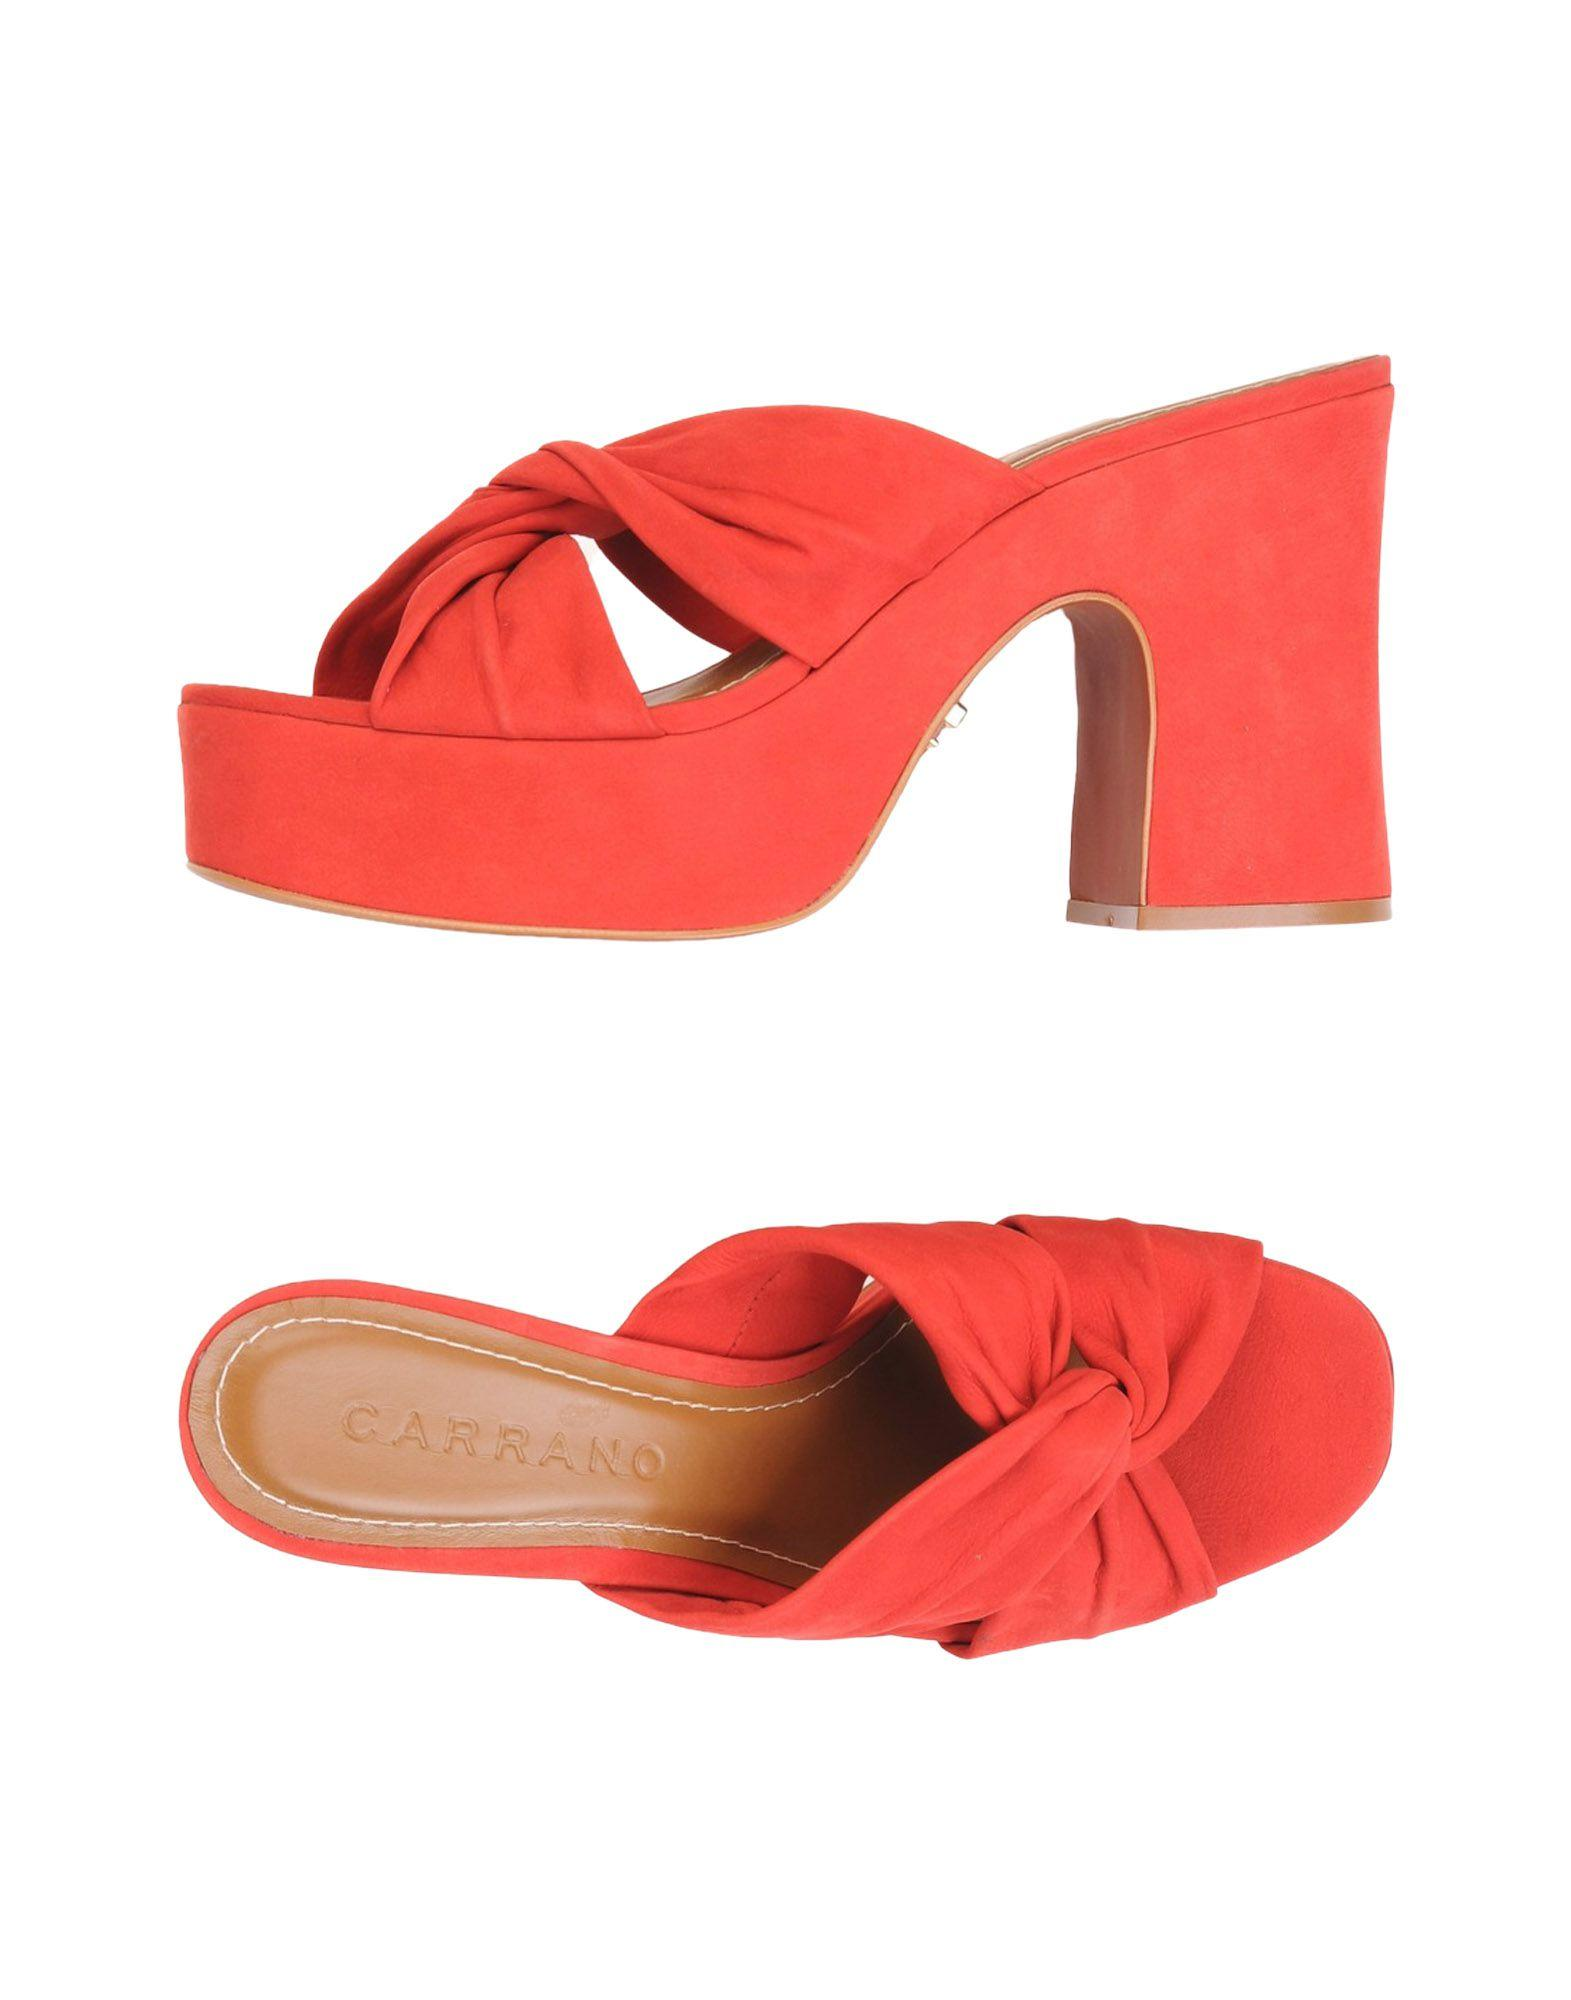 55672436962a8 Carrano Sandals In Red